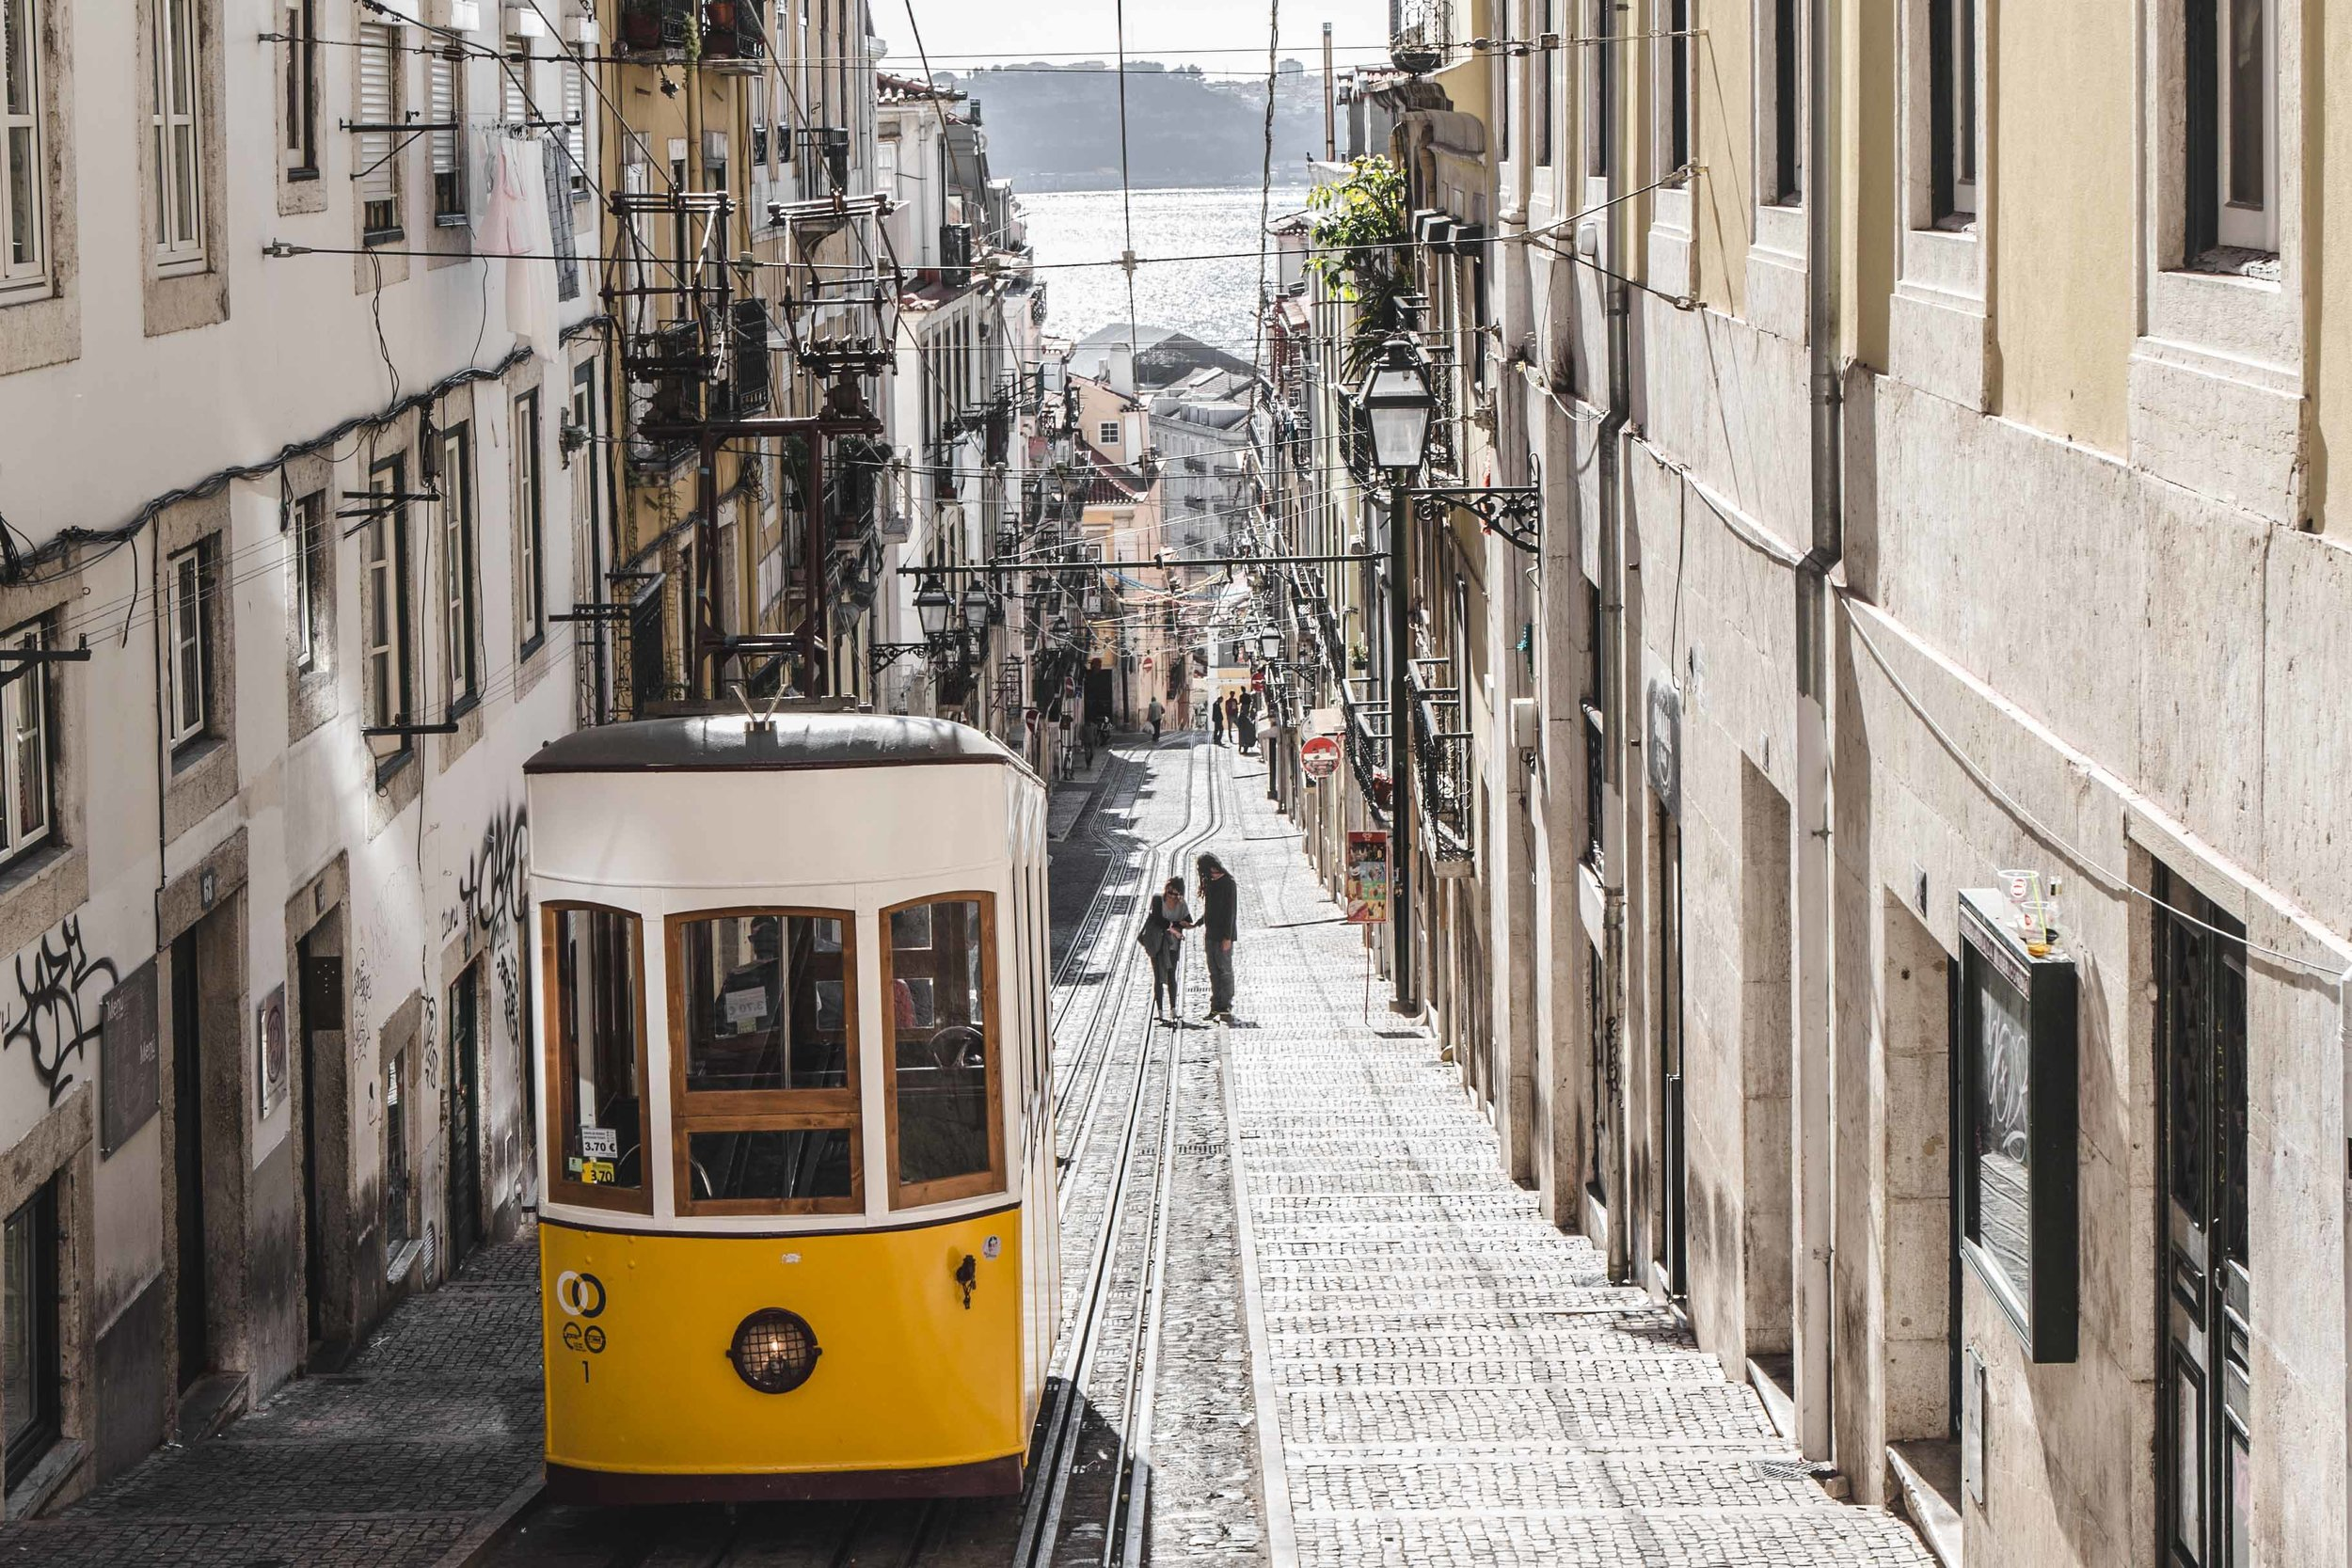 lisbon historic center and tram